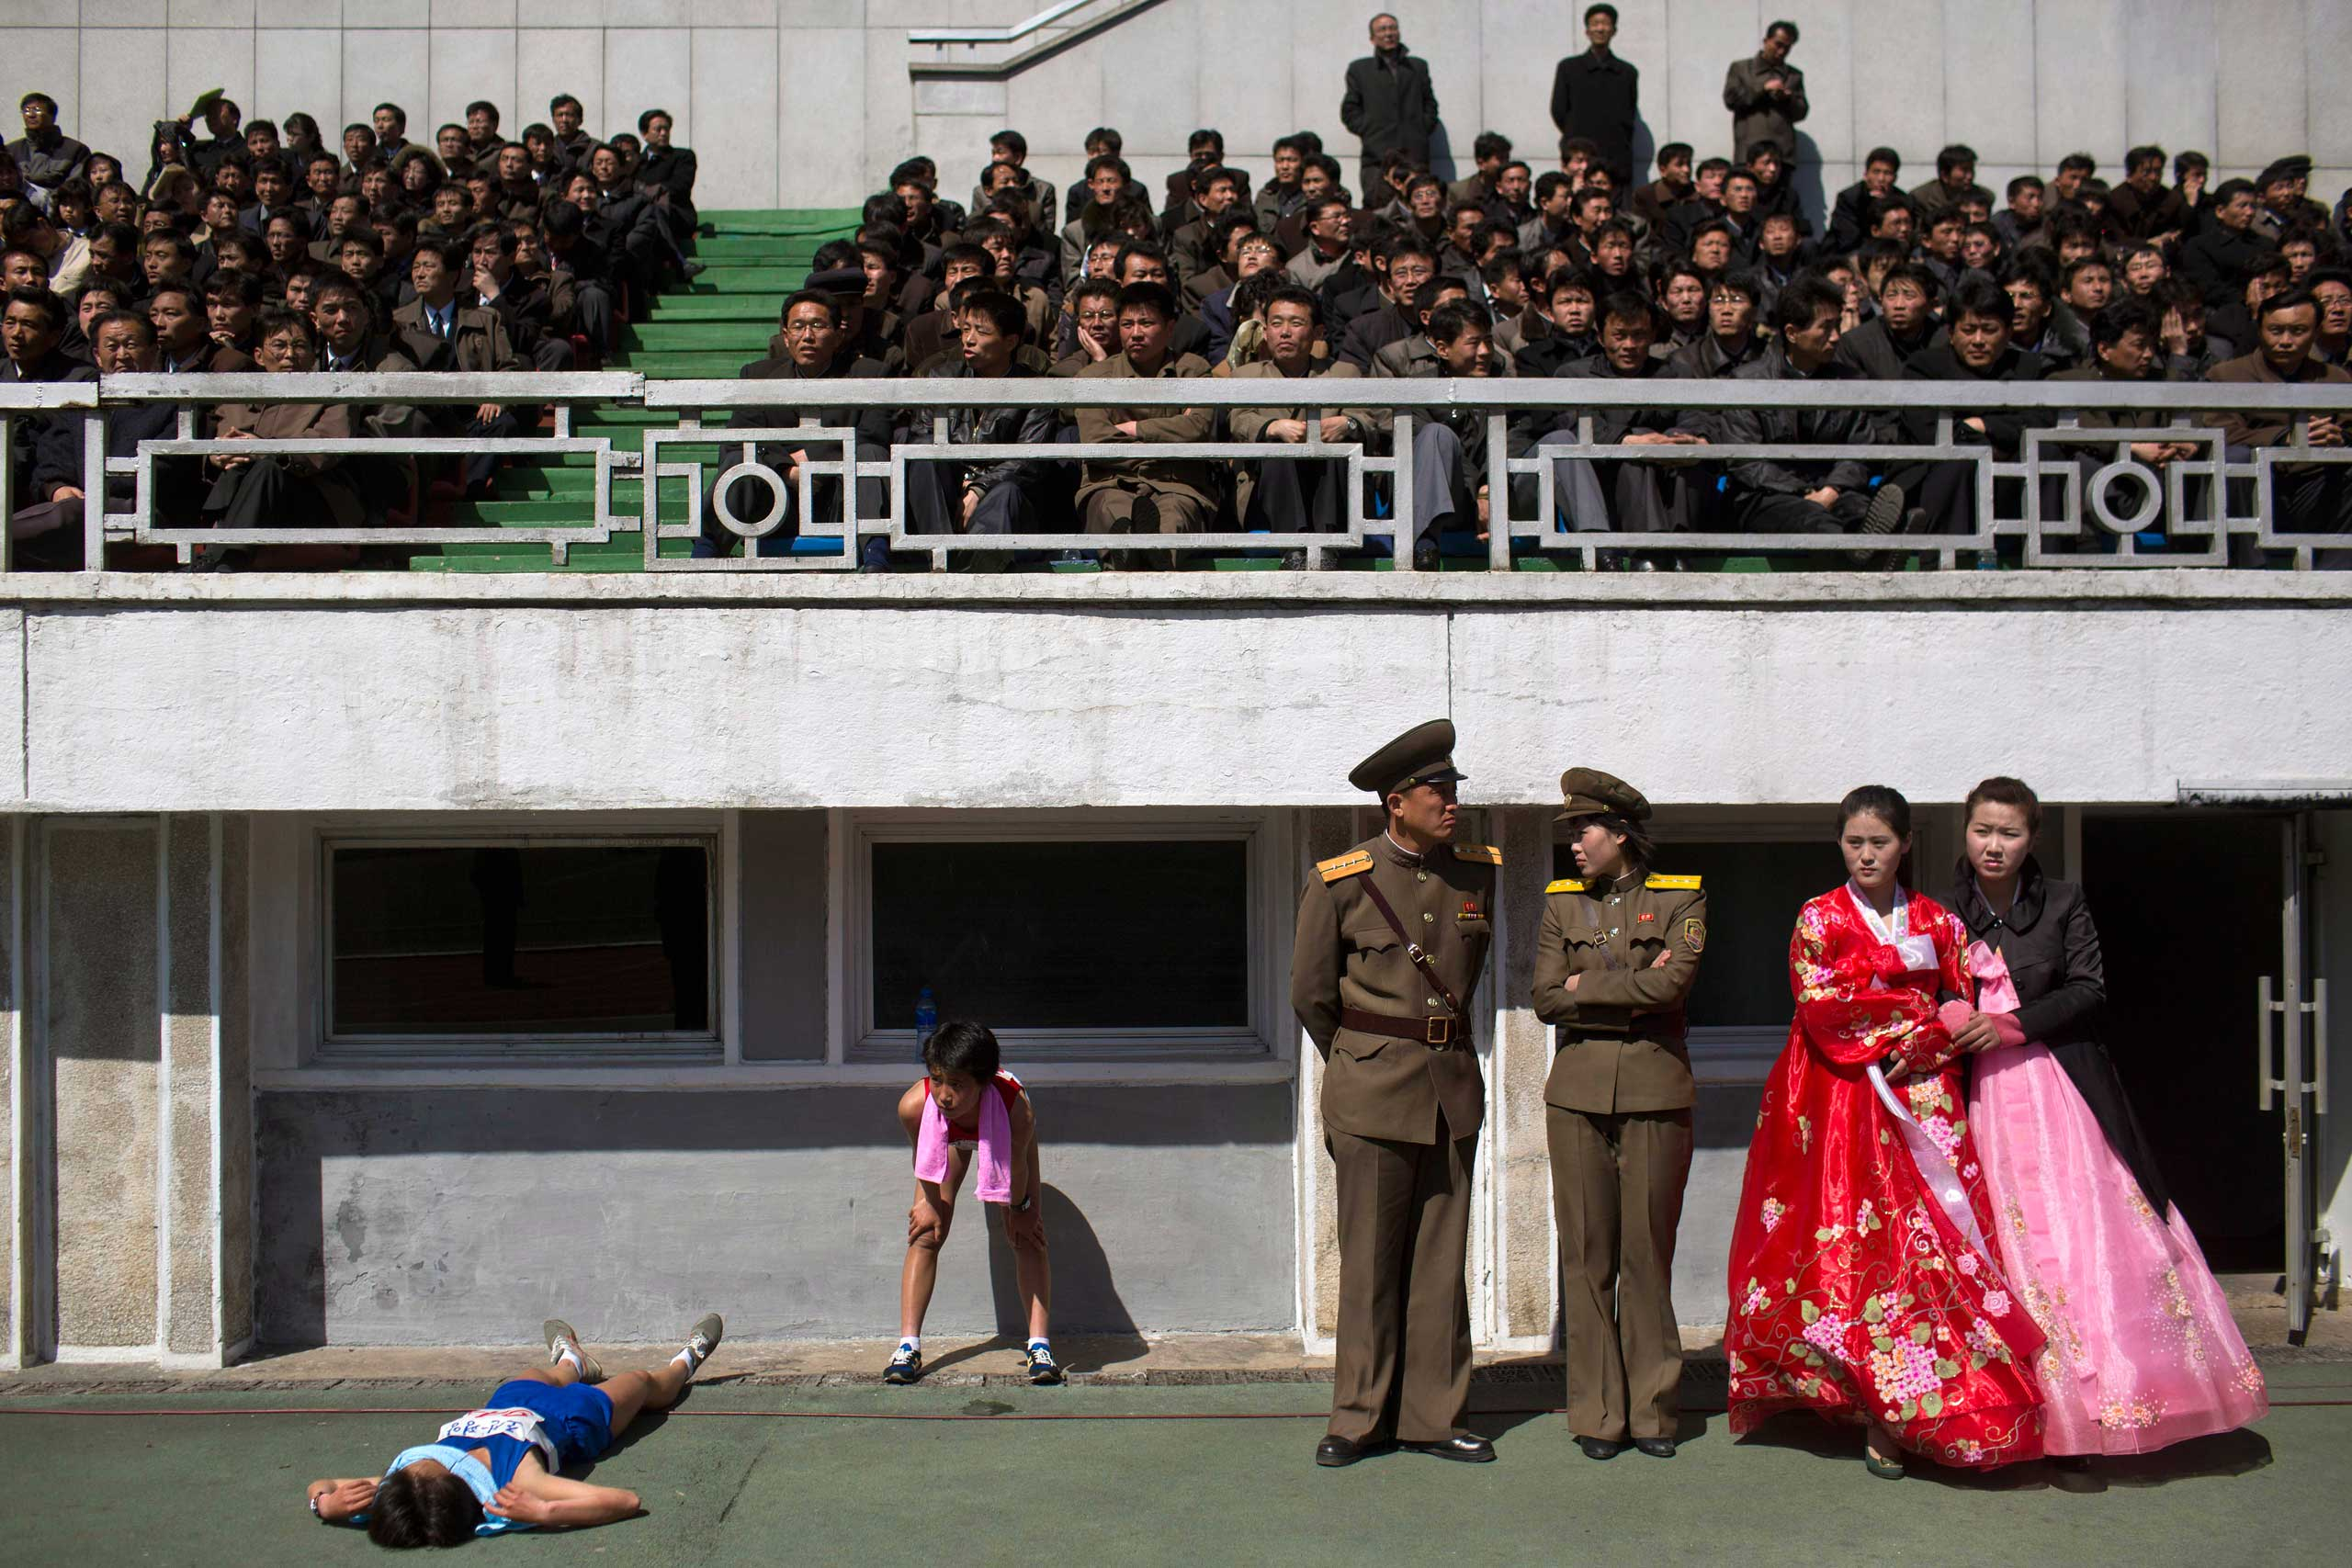 April 14, 2013. Runners rest inside Kim Il Sung Stadium in Pyongyang. North Korea hosted the 26th Mangyongdae Prize Marathon to mark the upcoming birthday of the late leader Kim Il Sung.